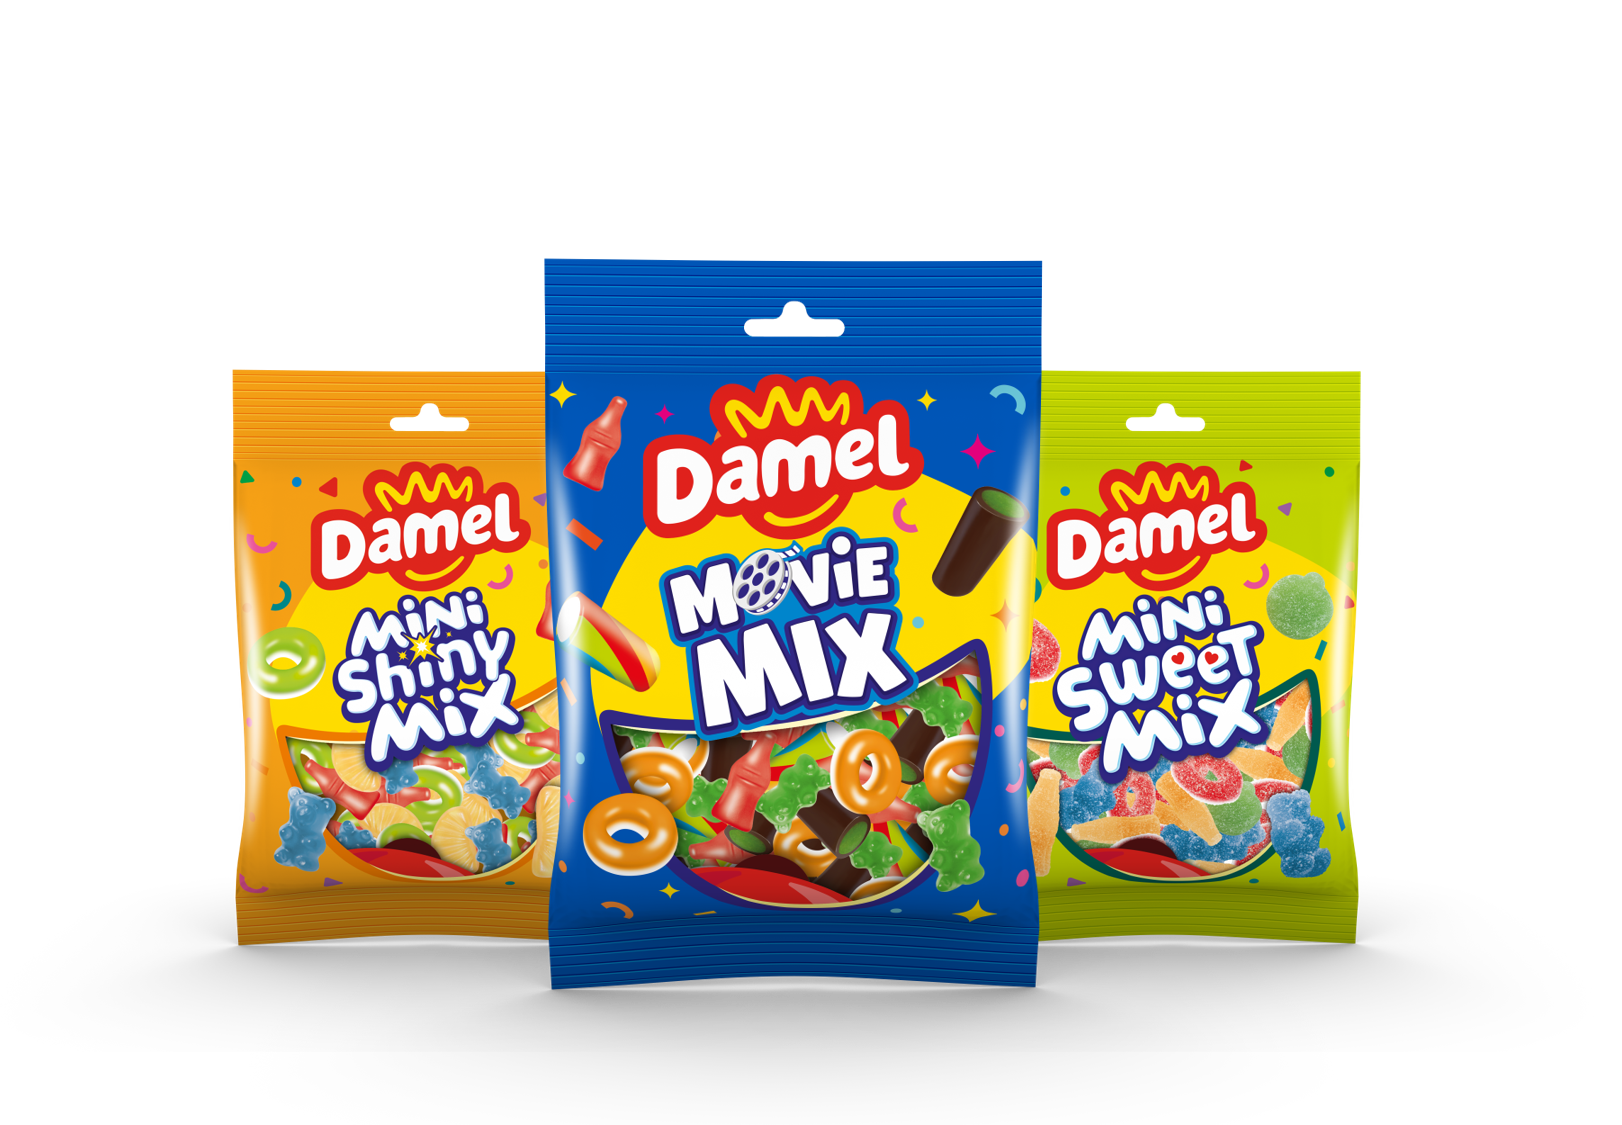 La nueva gama de surtidos de goma de Damel: Movie Mix, Mini Shiny Mix y Mini Sweet Mix.